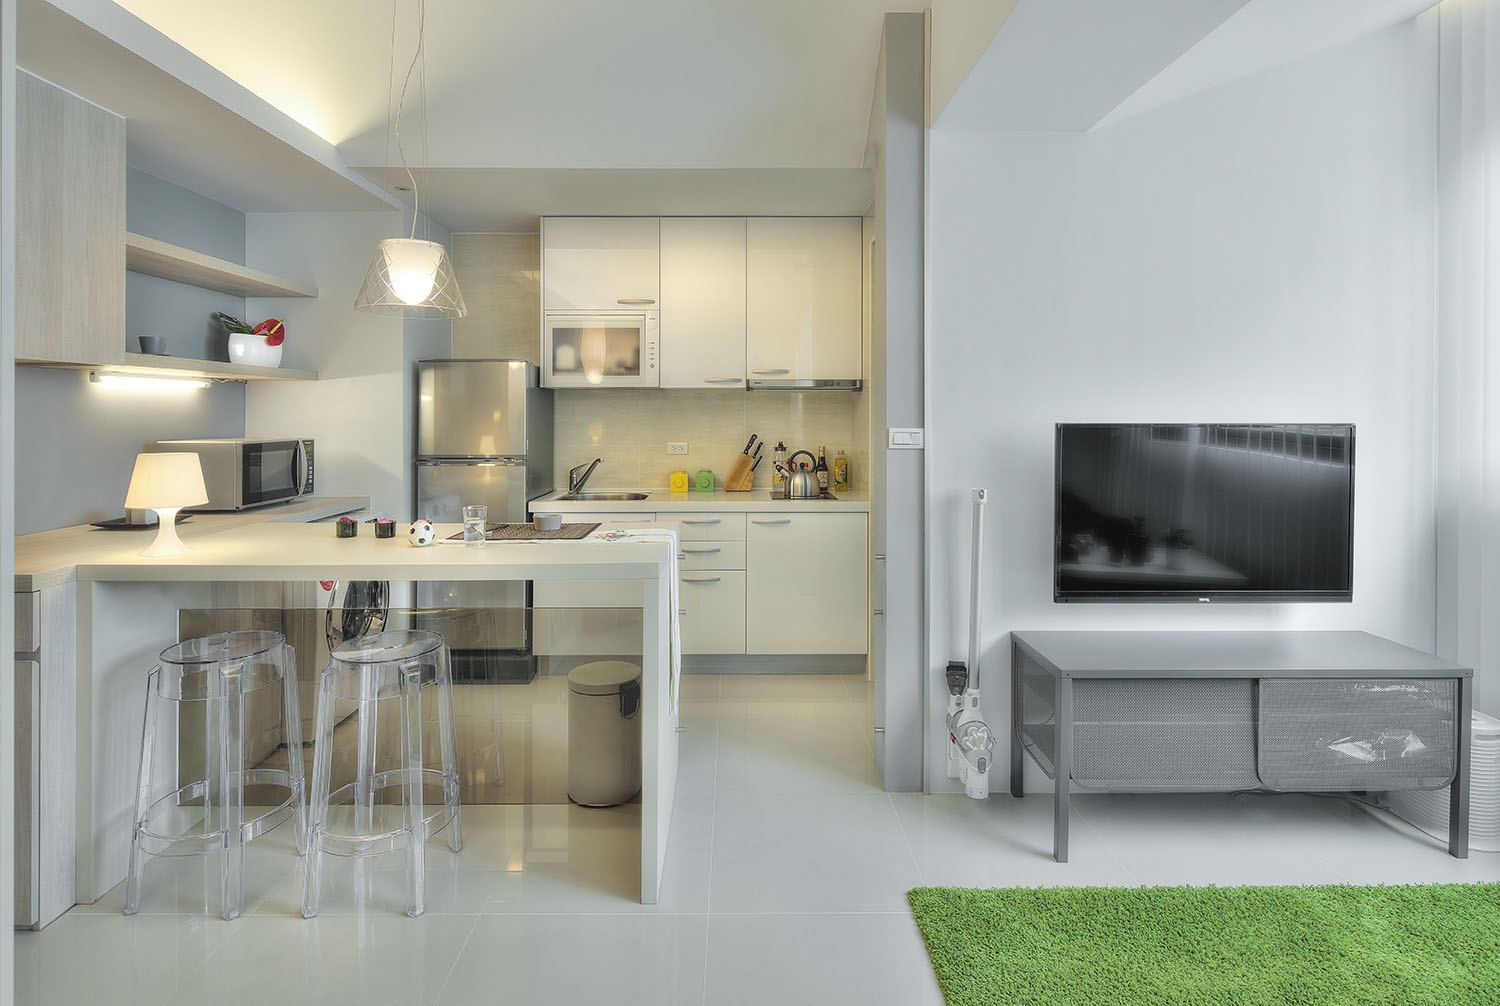 Apt Kitchen Small Taipei Studio Apartment With Clever Efficient Design